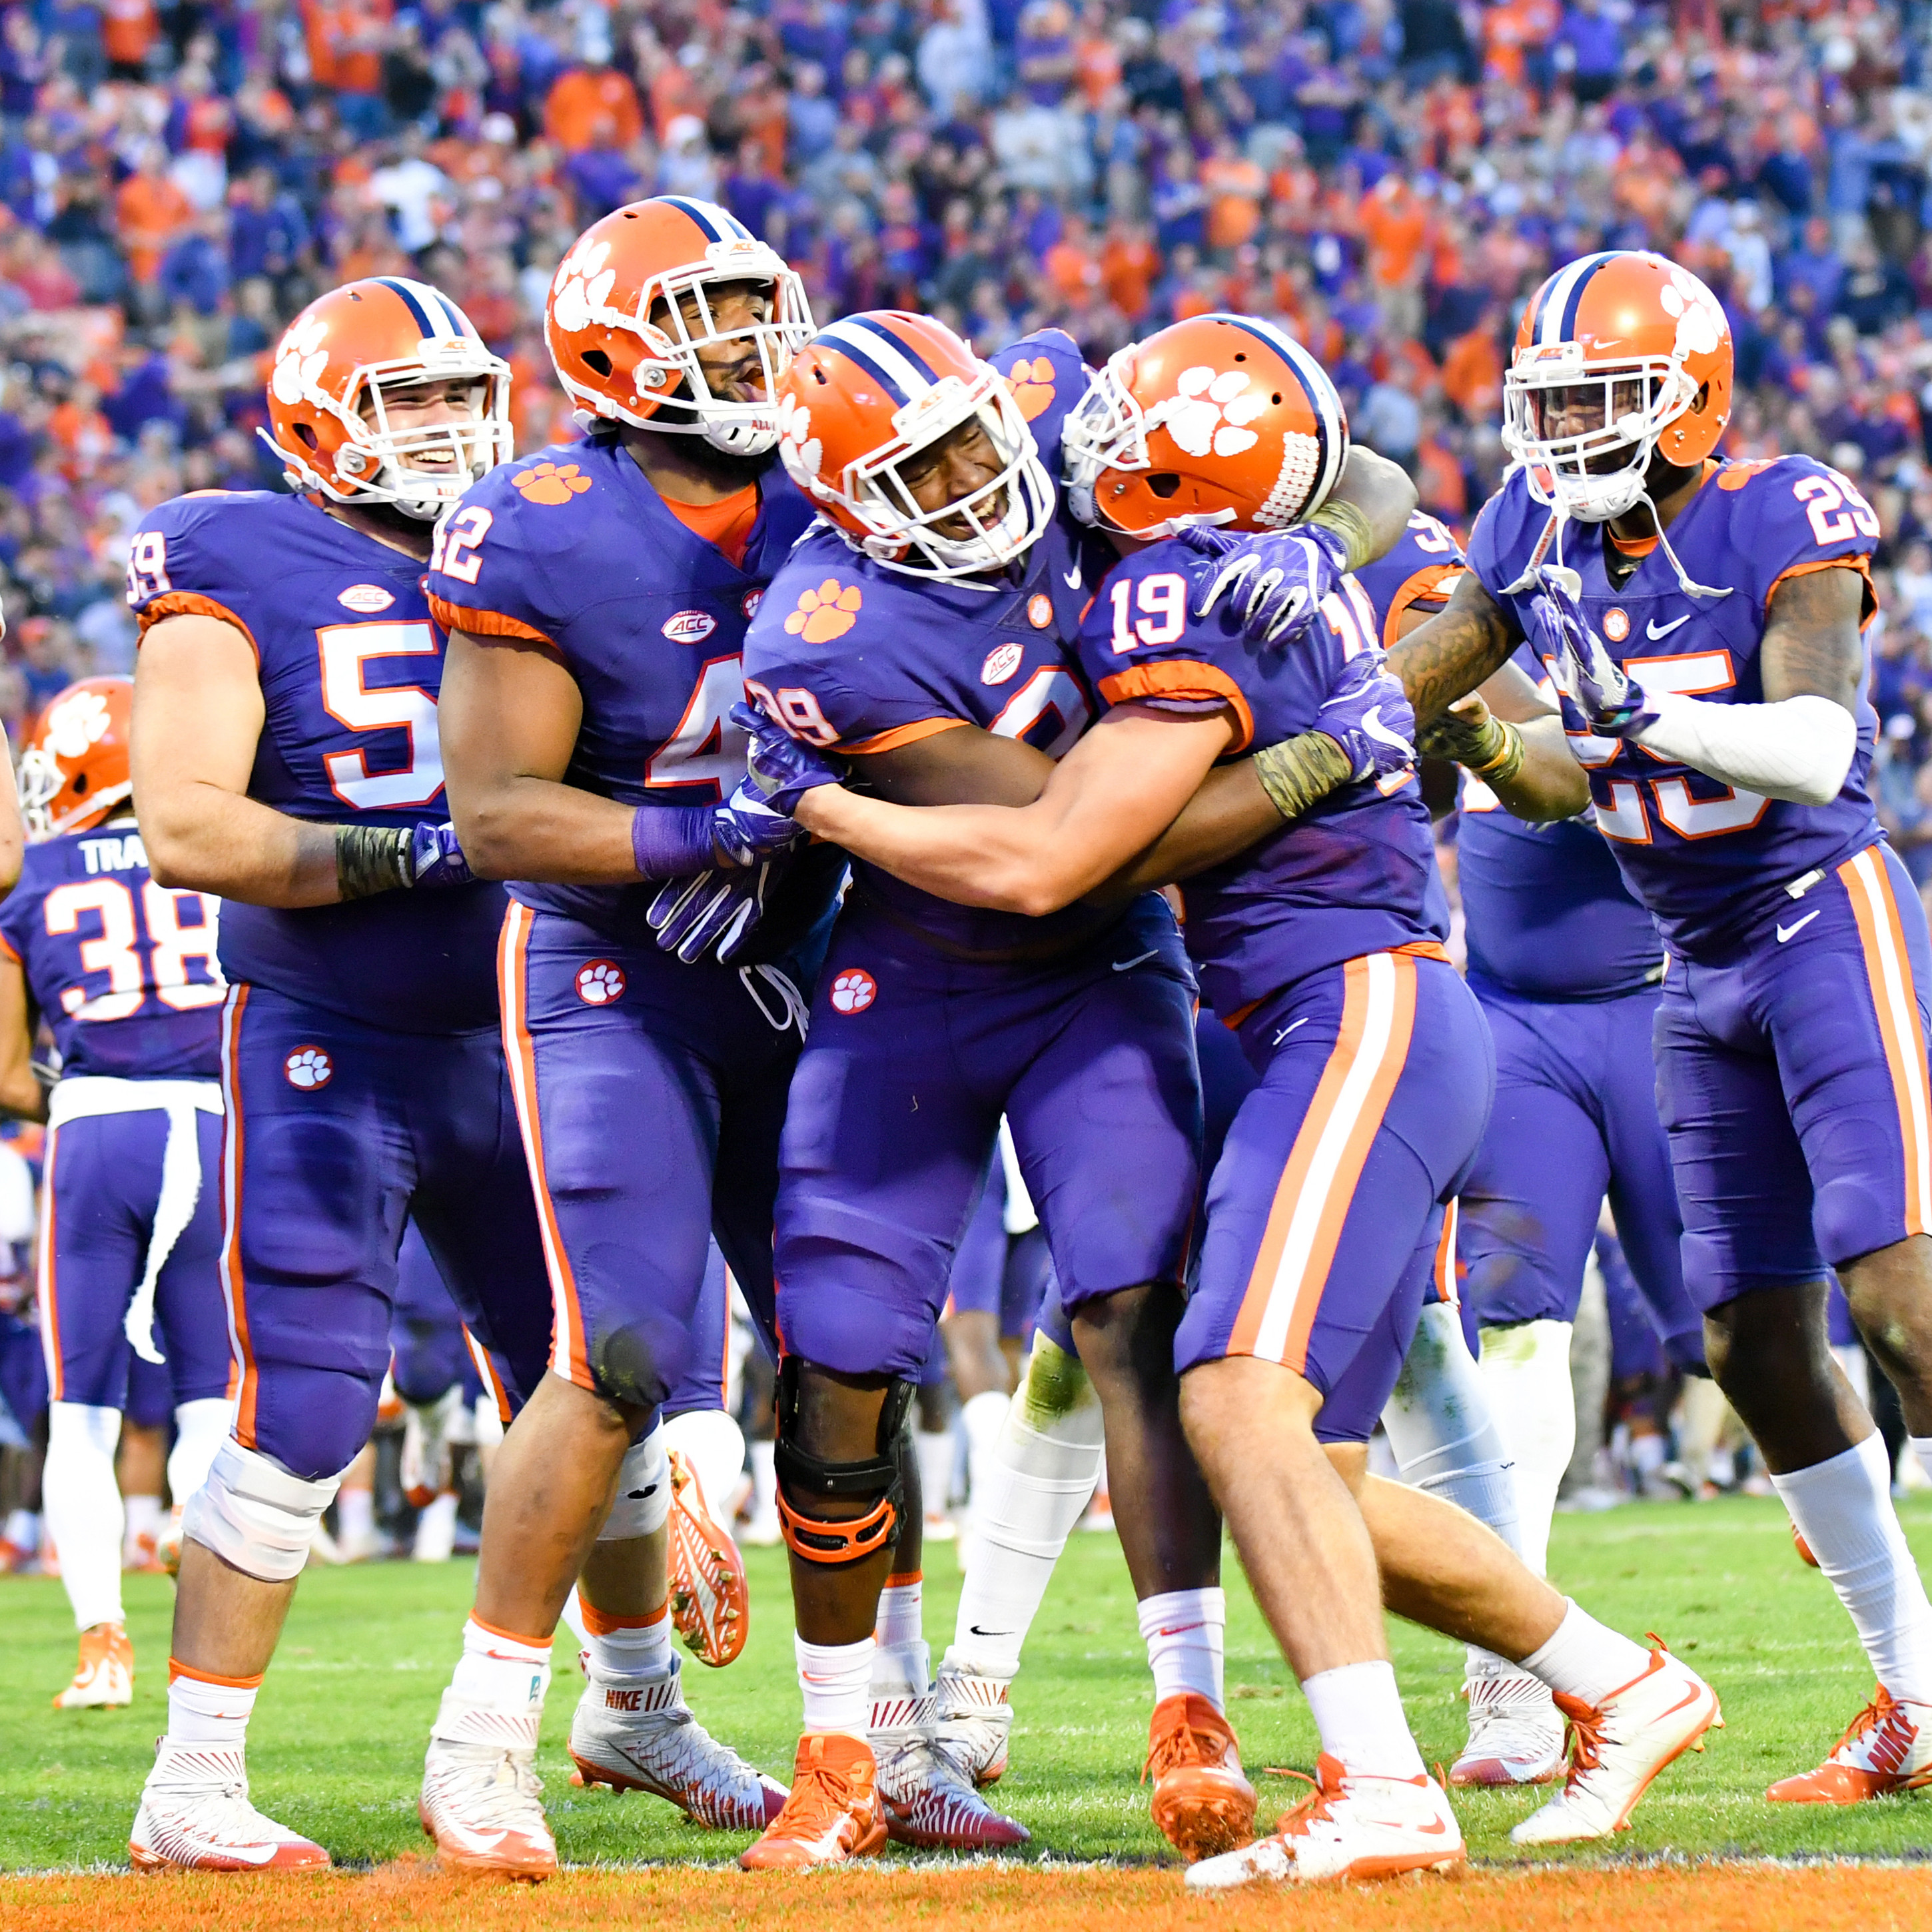 GAMEDAY GUIDE: Pittsburgh at Clemson